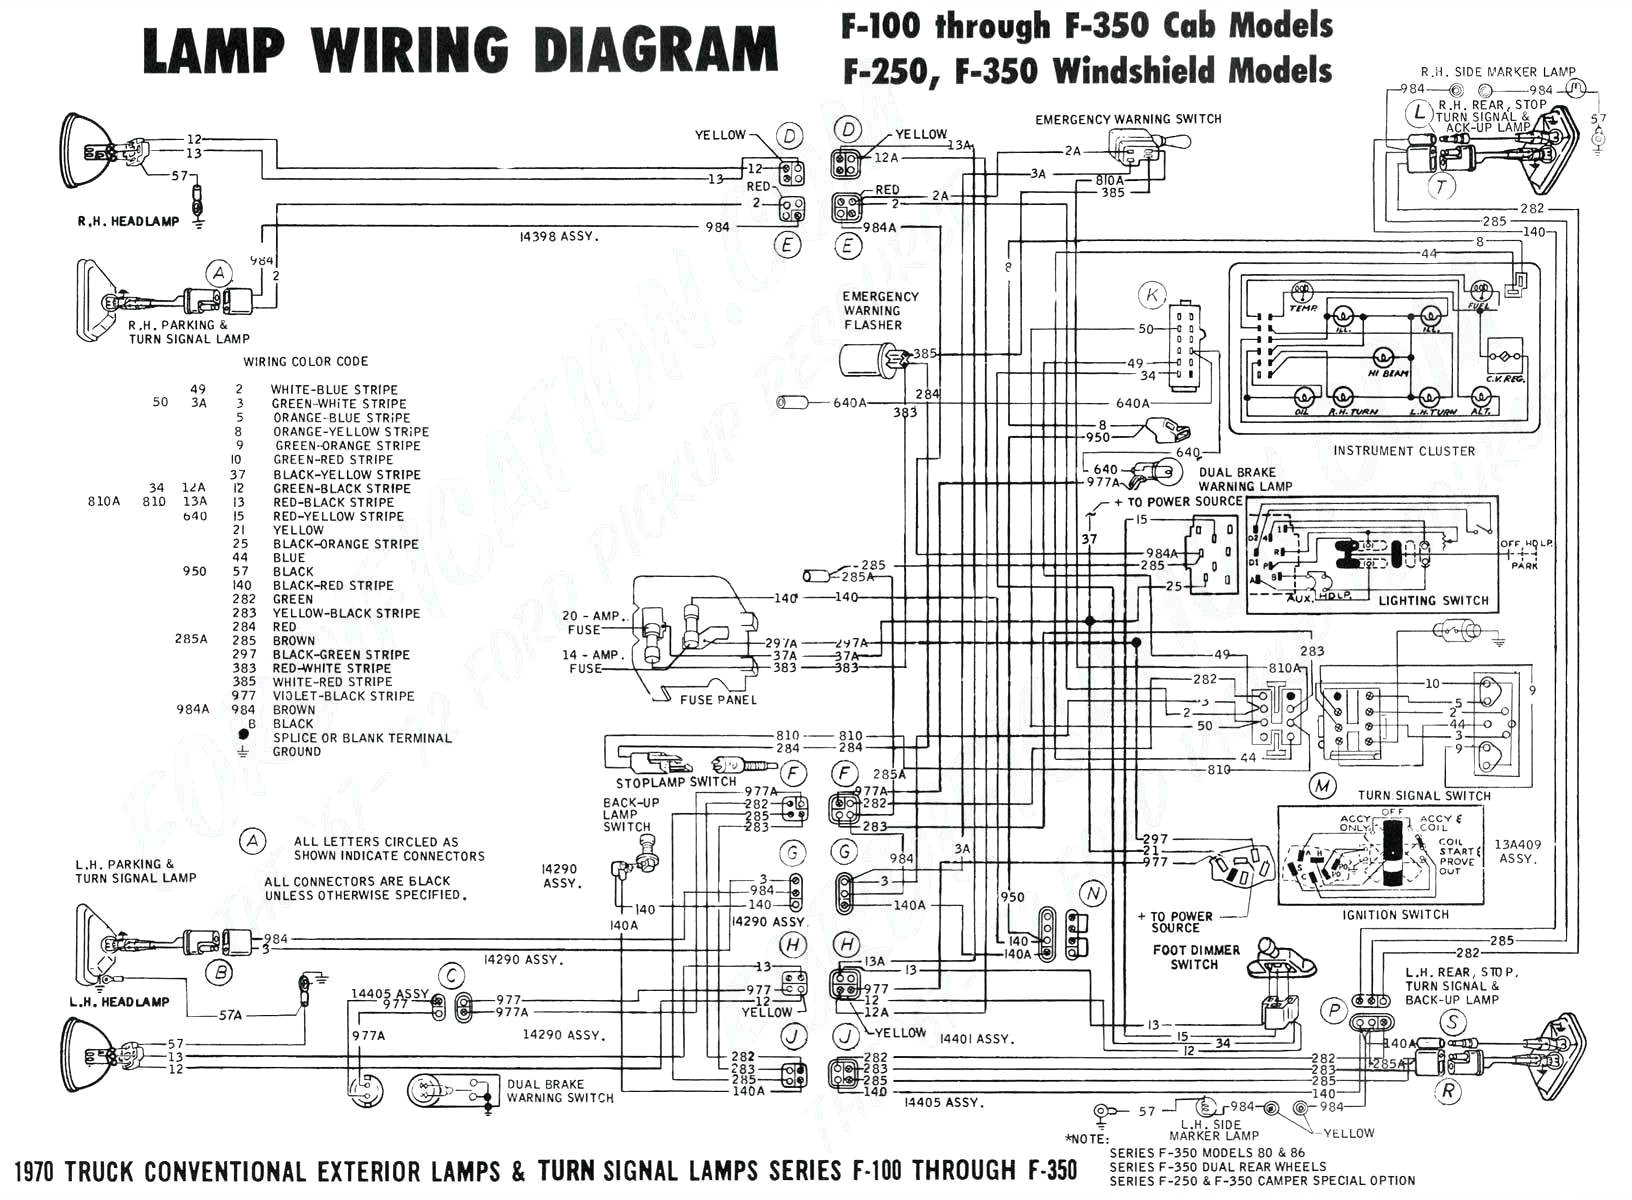 wiring diagram 2005 chevy silverado further 2003 ford expedition wiring diagram 2005 chevy silverado further 2003 ford expedition fuel